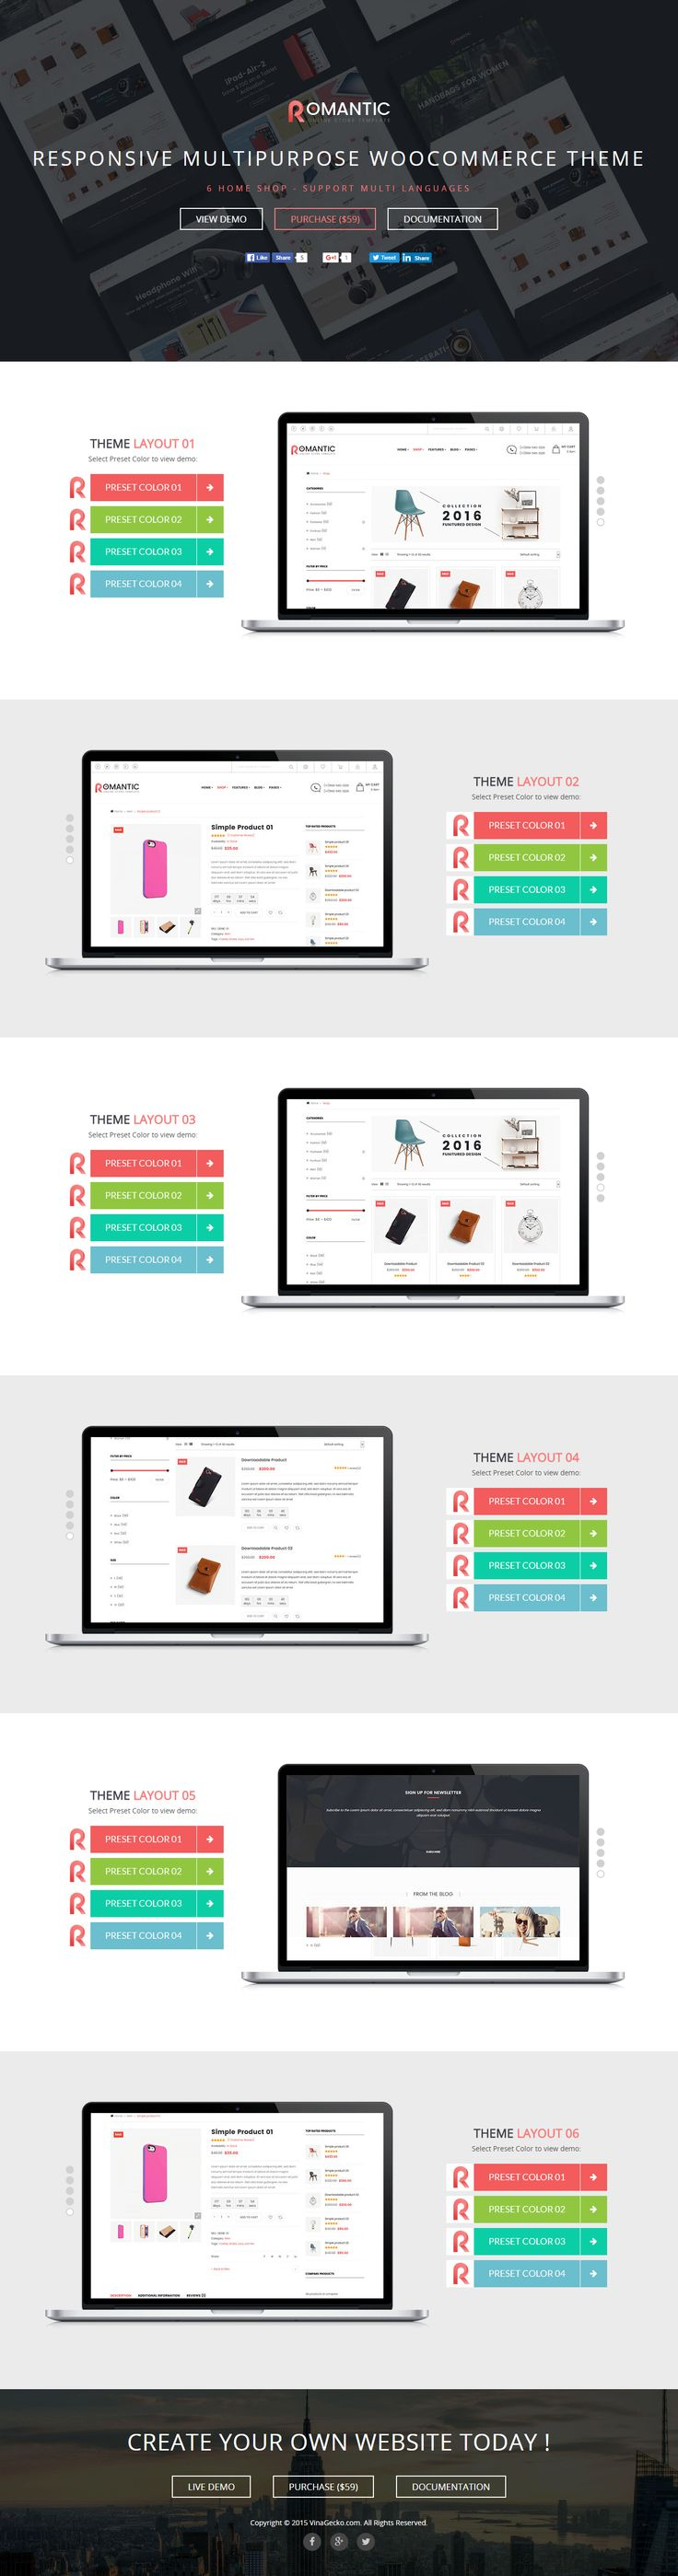 VG Romantic – Responsive Multipurpose WooCommerce Theme  VG Romantic is a creative and innovative Multipurpose WooCommerce Theme for digital, fashion and furniture store. This theme comes with 6 Unique Theme Layouts (with 4 Presets Color for each layout) and 100% responsive that runs smoothly on any type of devices. Compatible with WordPress 4.5+ and WooCommerce 2.5+